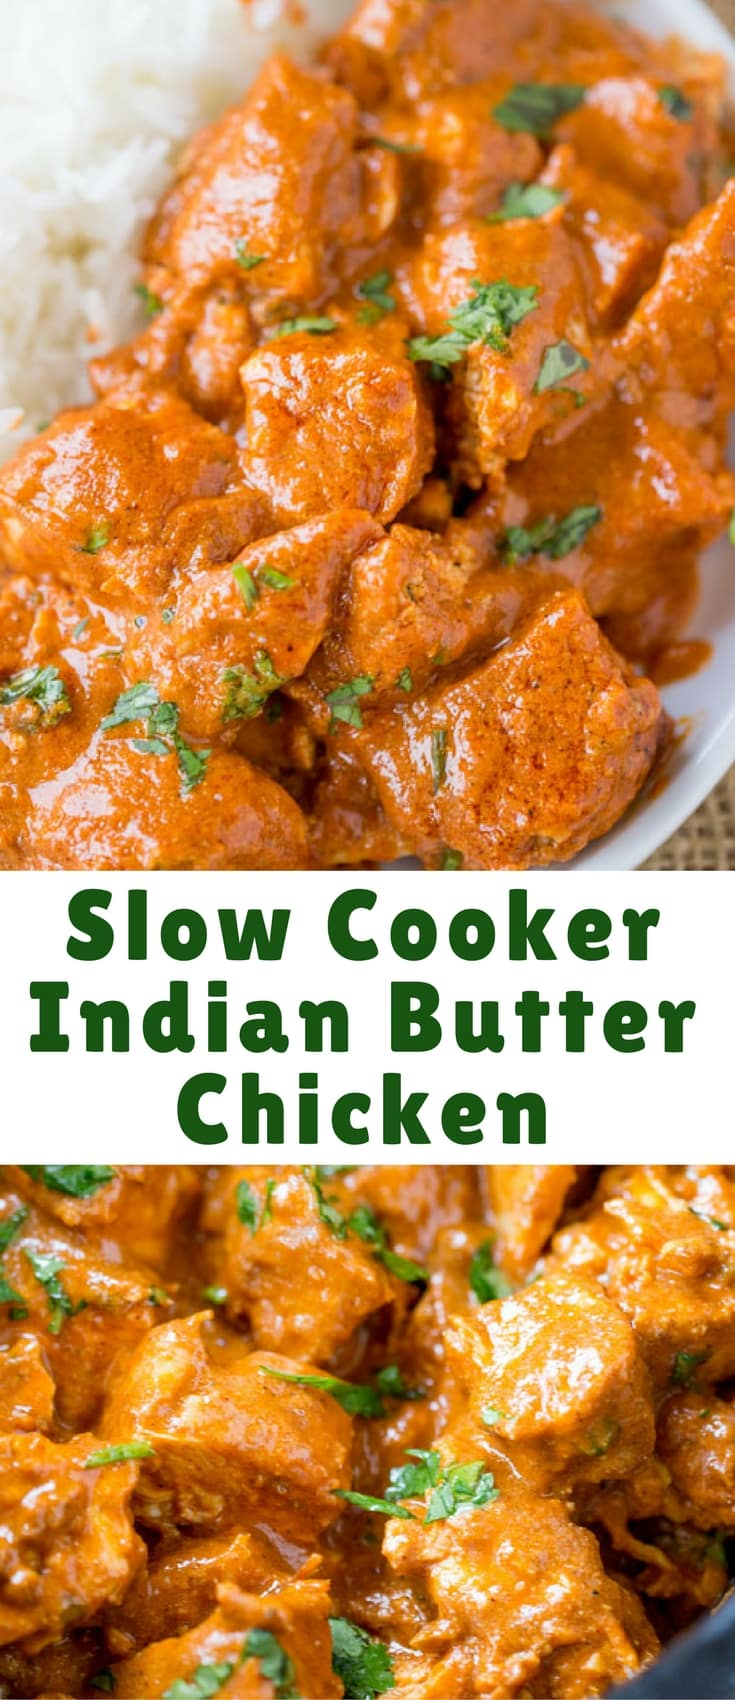 Slow Cooker Indian Butter Chicken made with spices you already have in your cabinet with all the creamy deep flavors you'd expect from a restaurant.